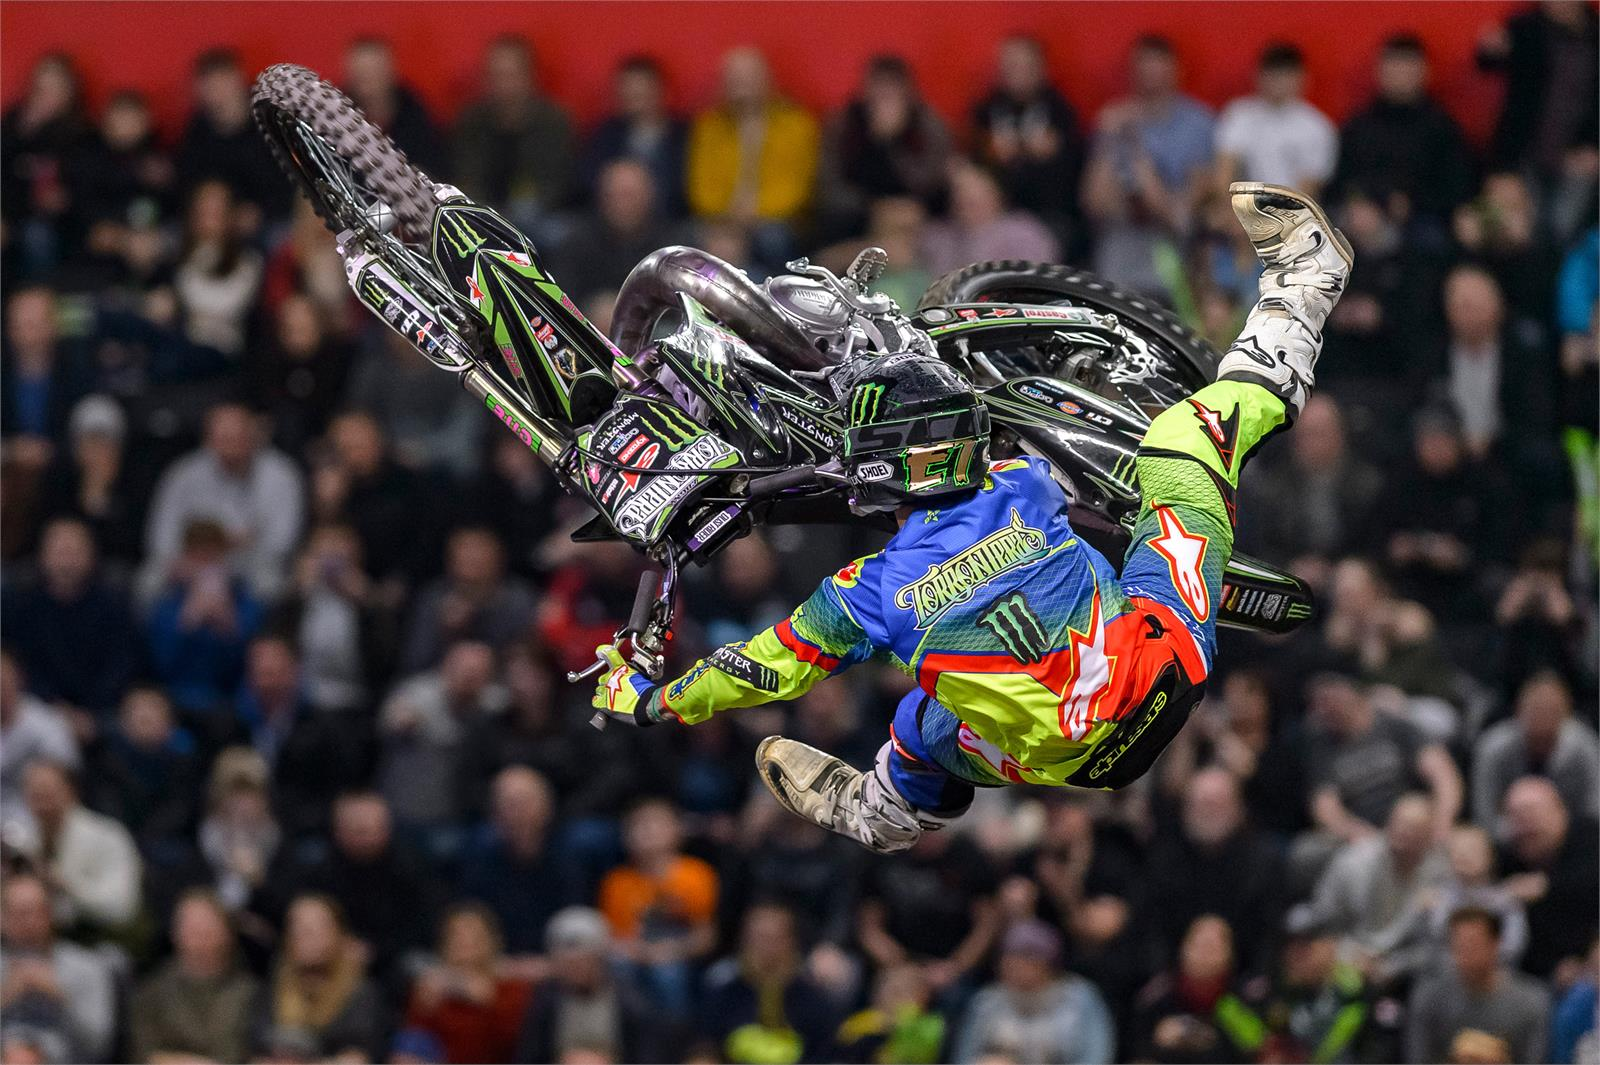 FMX madness from Torronteras